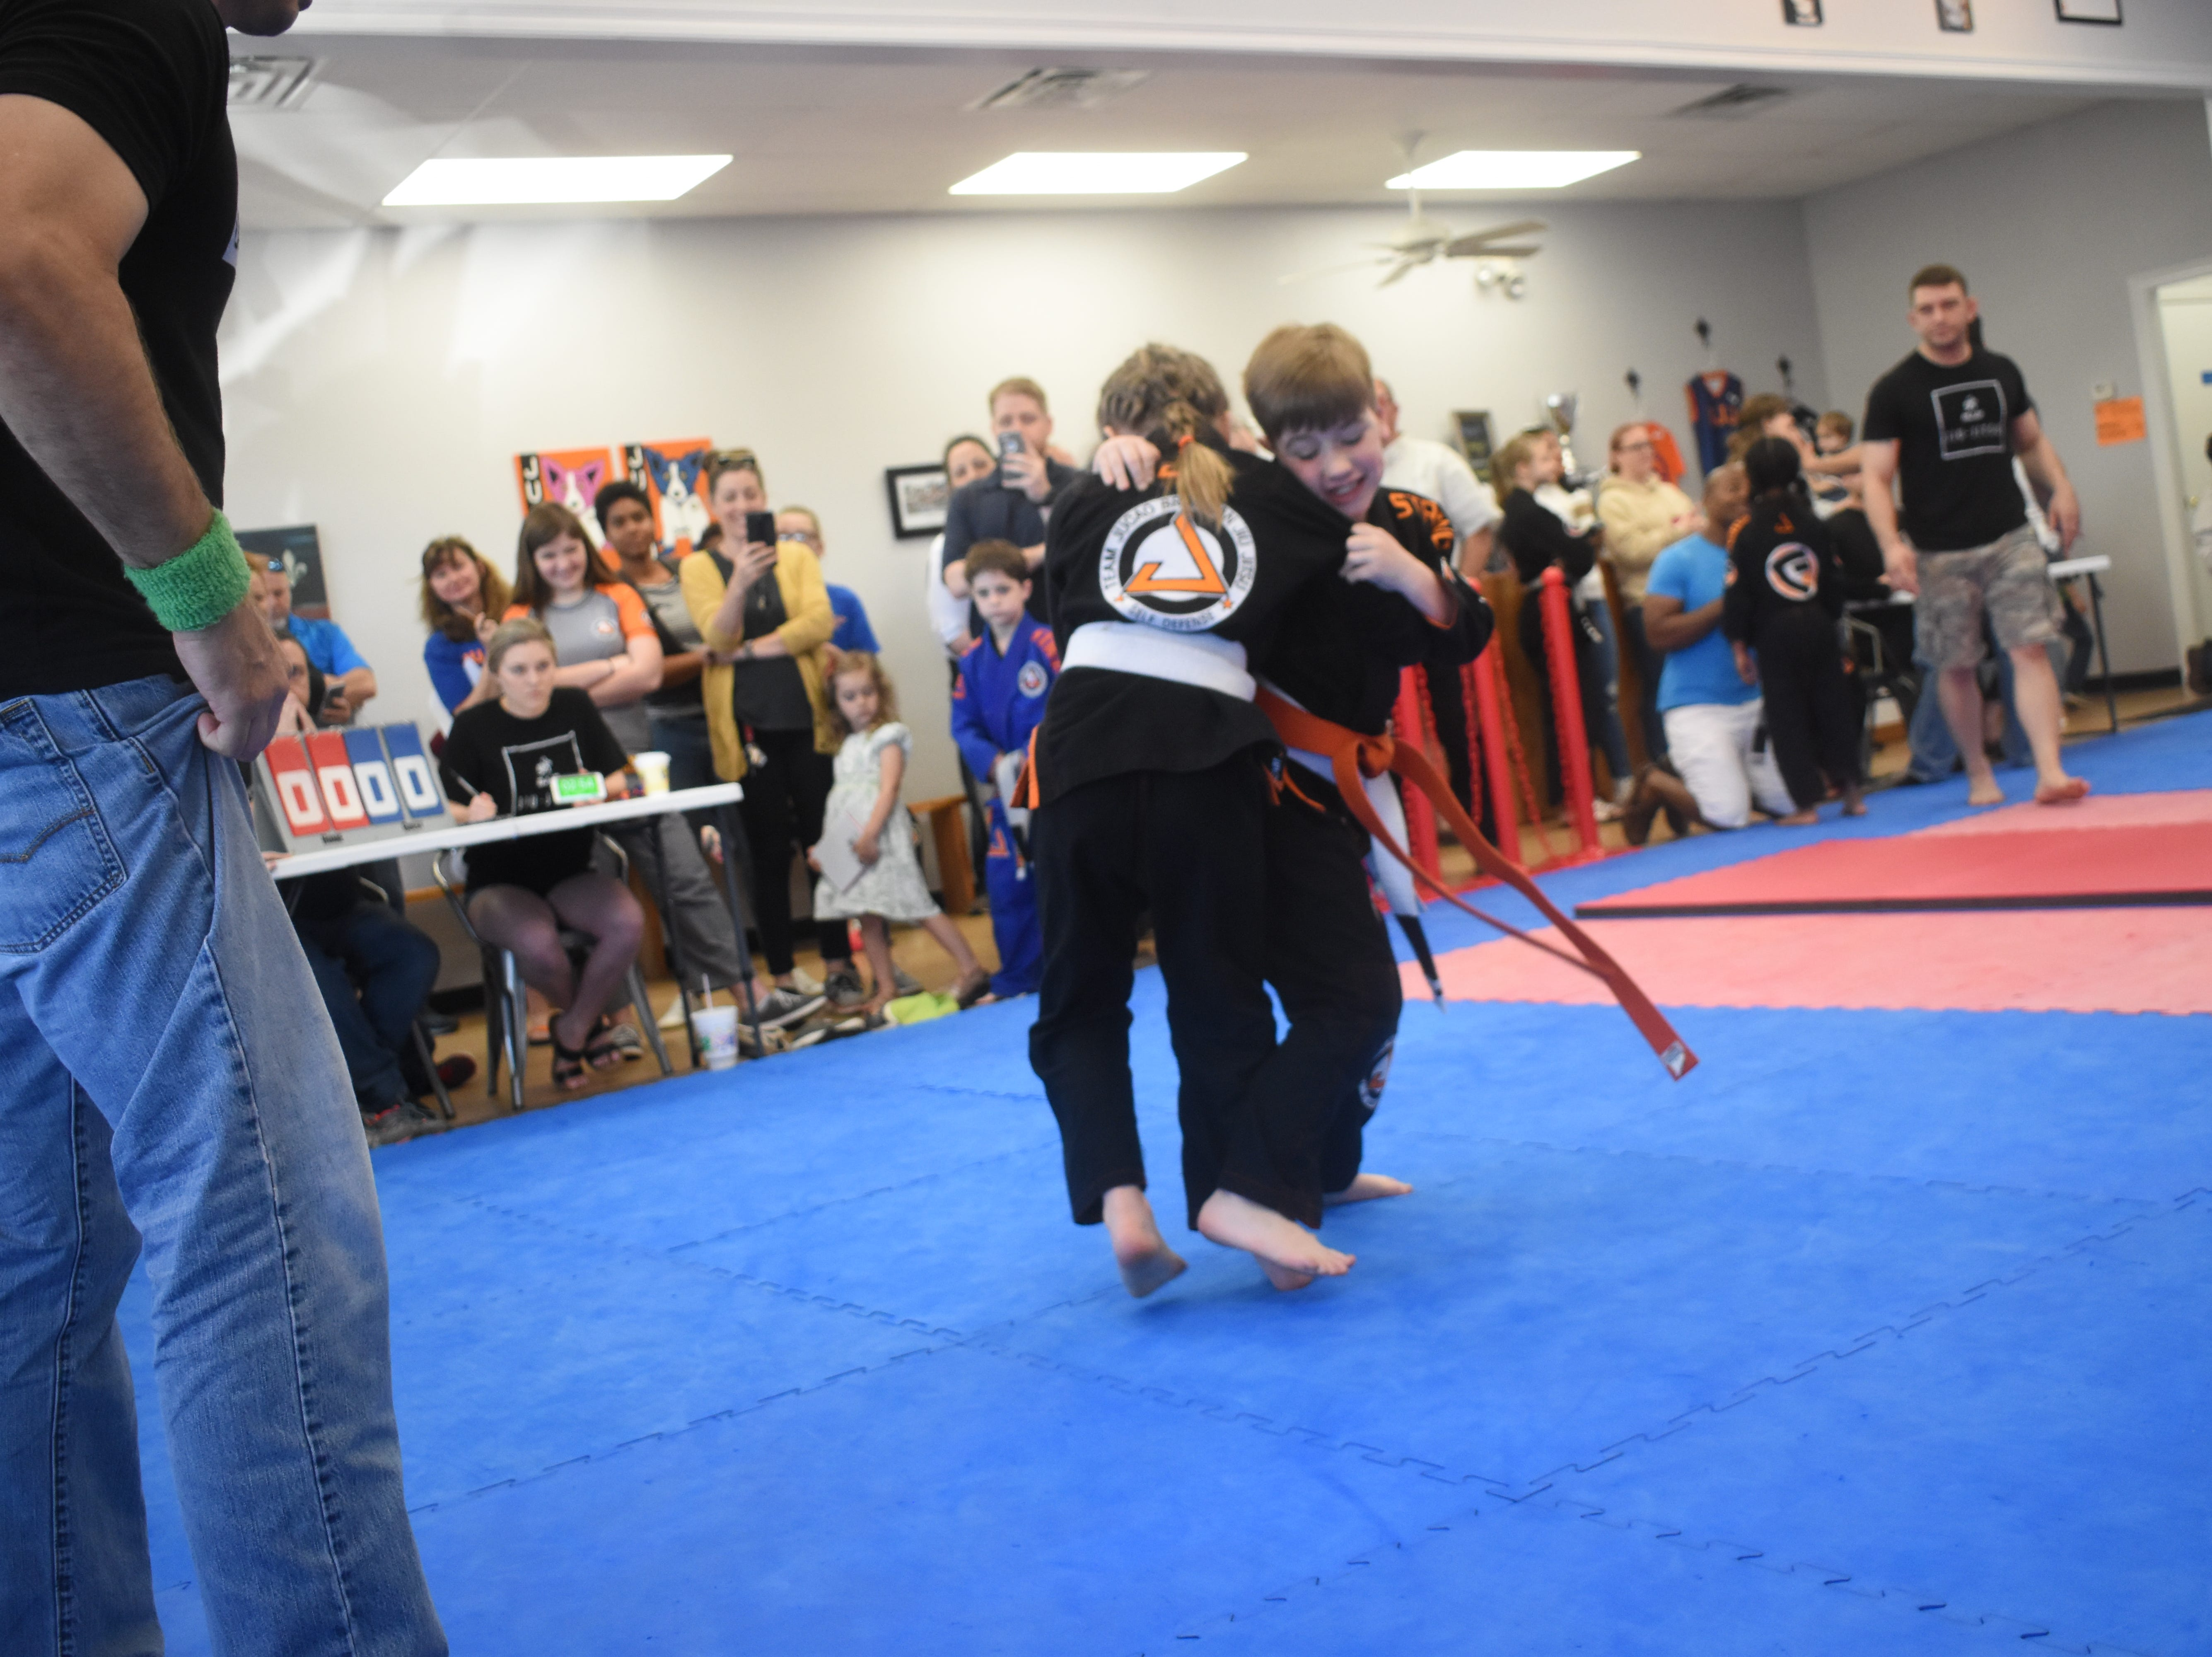 Over 53 competitors ages 5-15 competed in the first inter-school youth Brazilian Jiu Jitsu Tournament to be held in Central Louisiana at the Gracie United-Team Jucao Alexandria location on Metro Drive. Team Juc‹o Alexandria; Gracie United - Team Juc‹o Red River in Ball; and and Gracie United - Team Juc‹o in Leesville were represented.